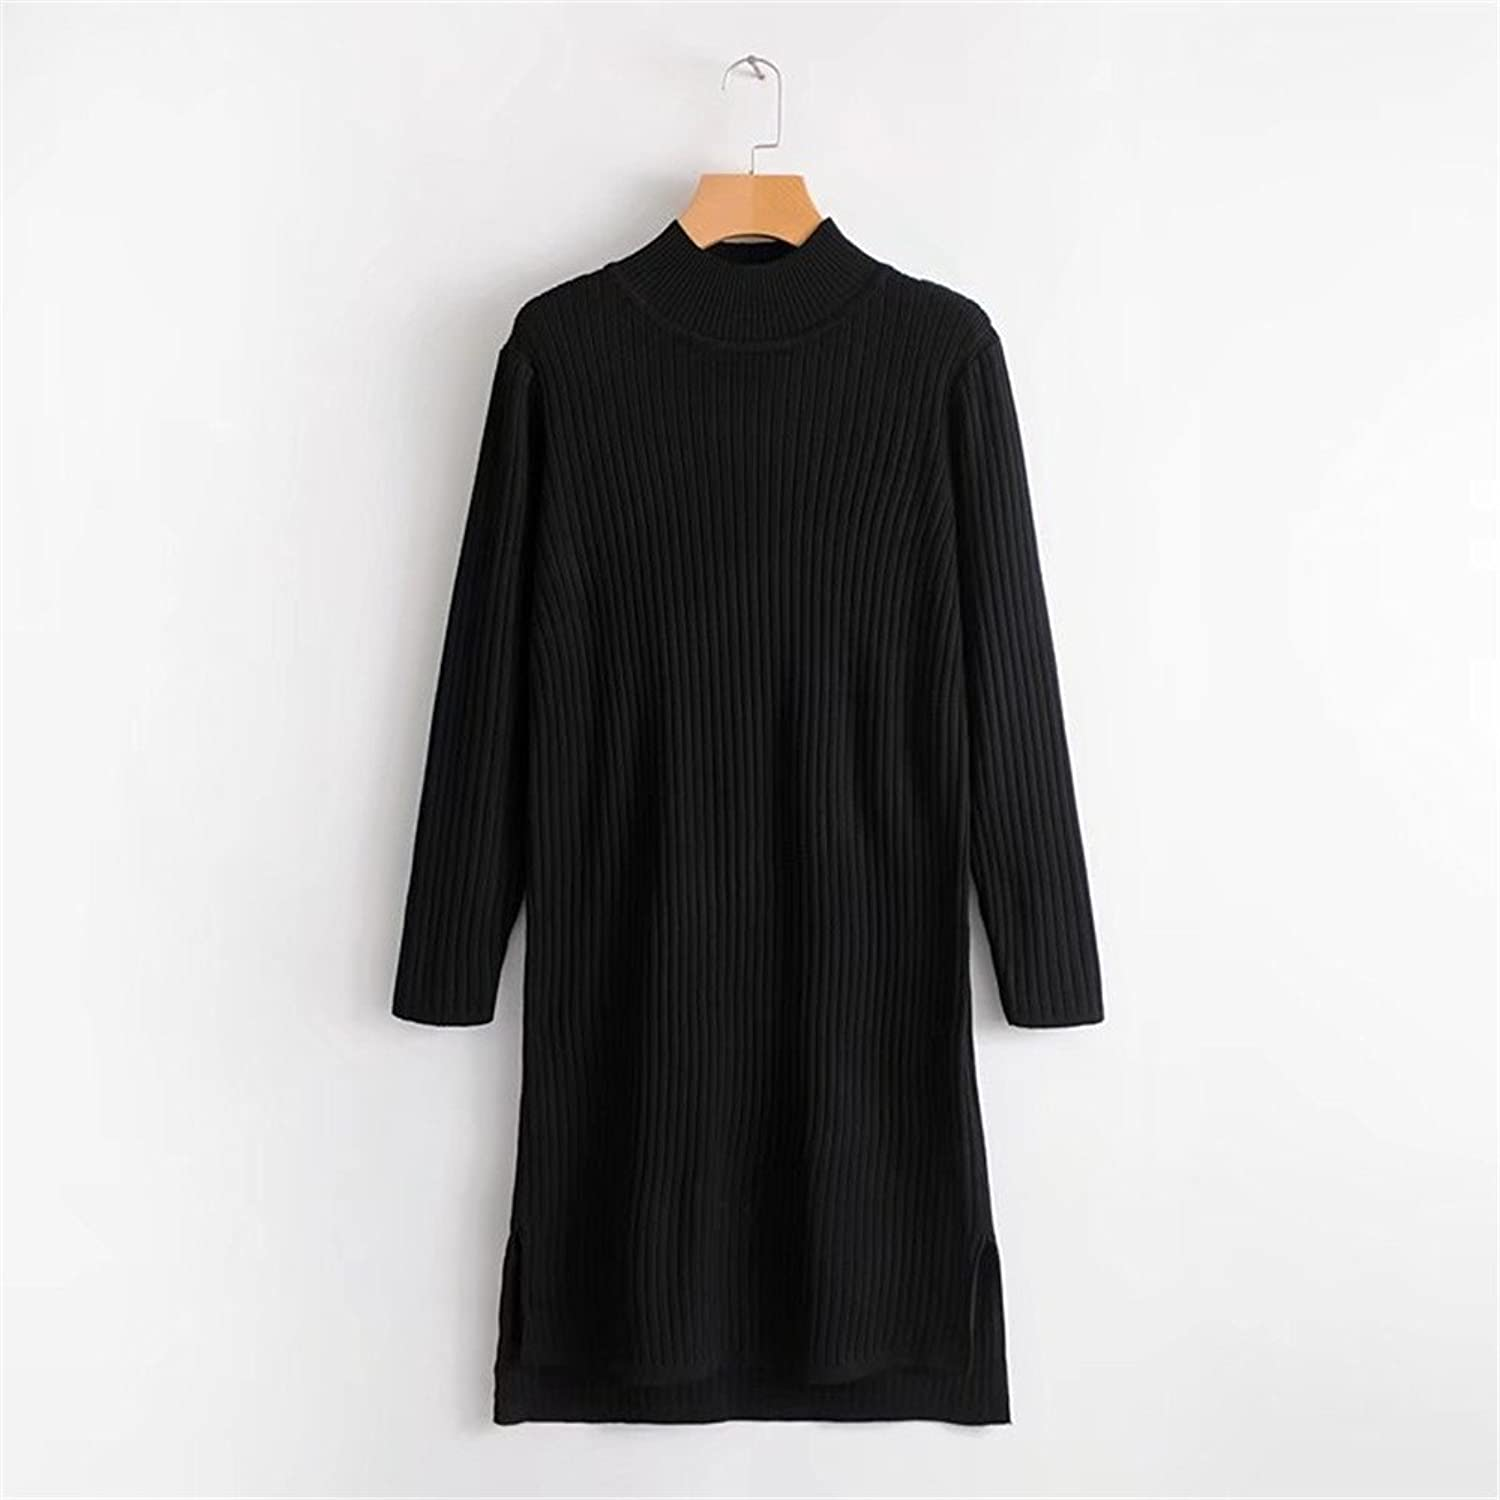 Long sleeve knitted sweater, autumn and winter fashion shirt, long sleeve knitted sweater, dress,black,F